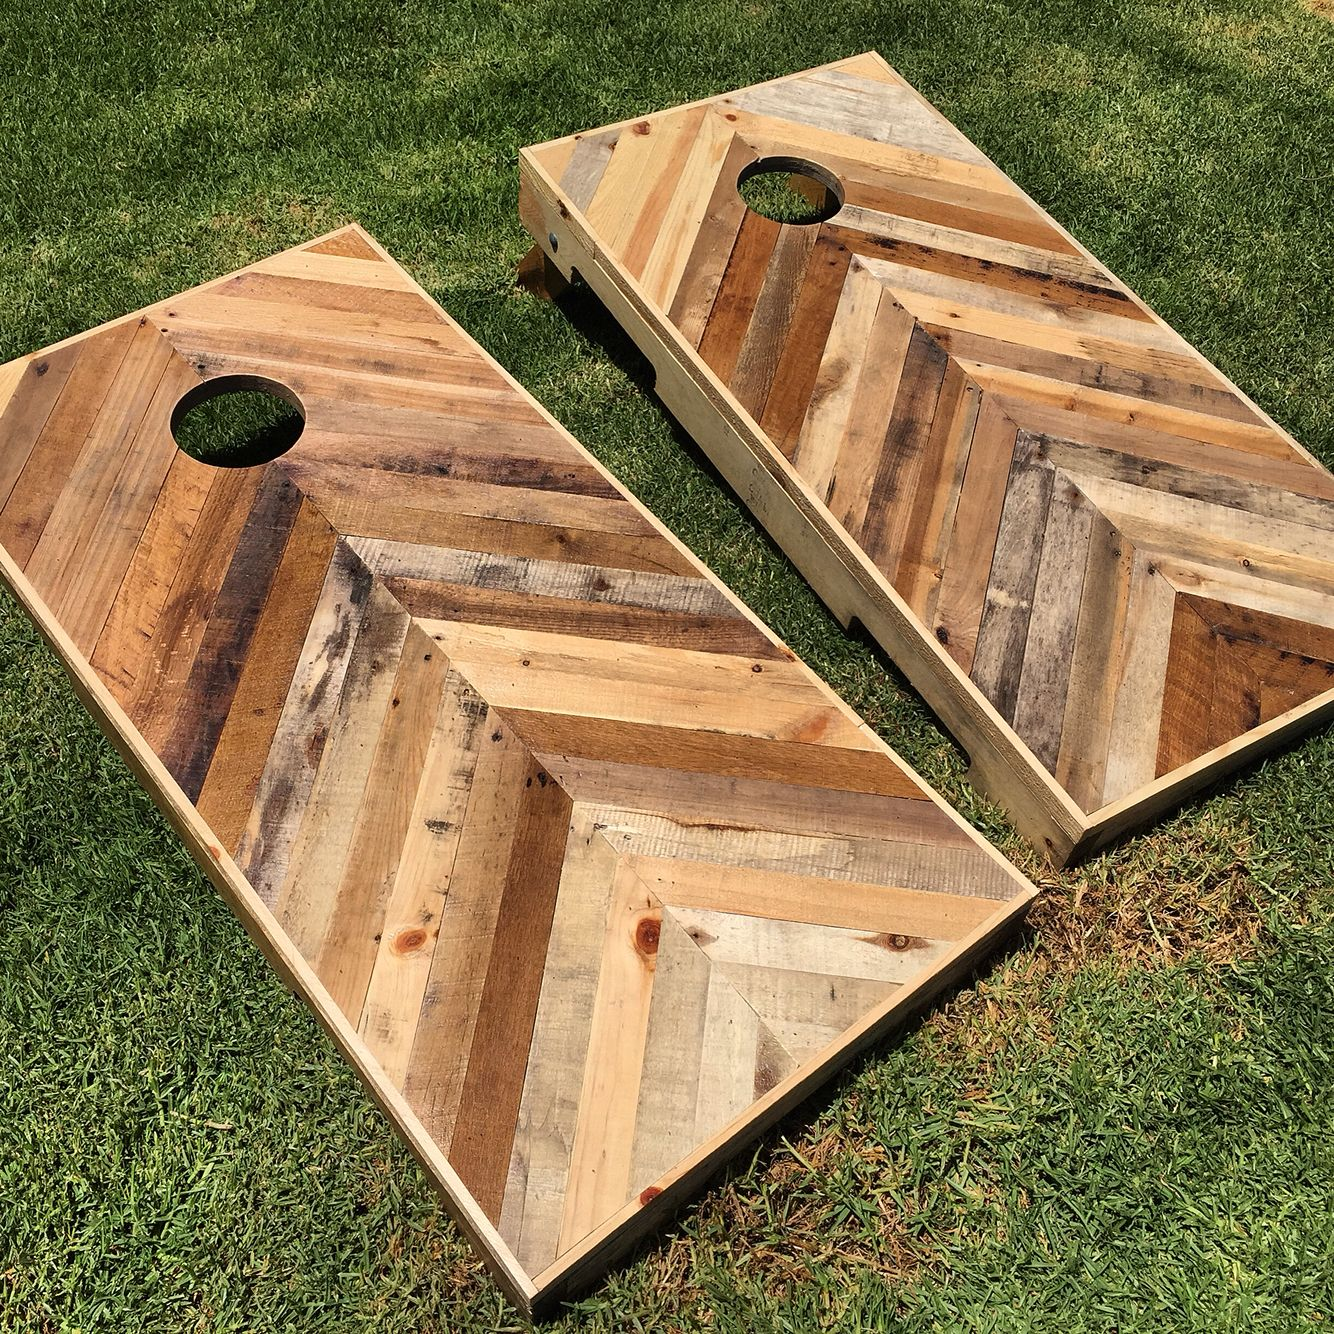 diy pallet chevron cornhole boards follow me on instagram for more diy projects builtbytouch. Black Bedroom Furniture Sets. Home Design Ideas